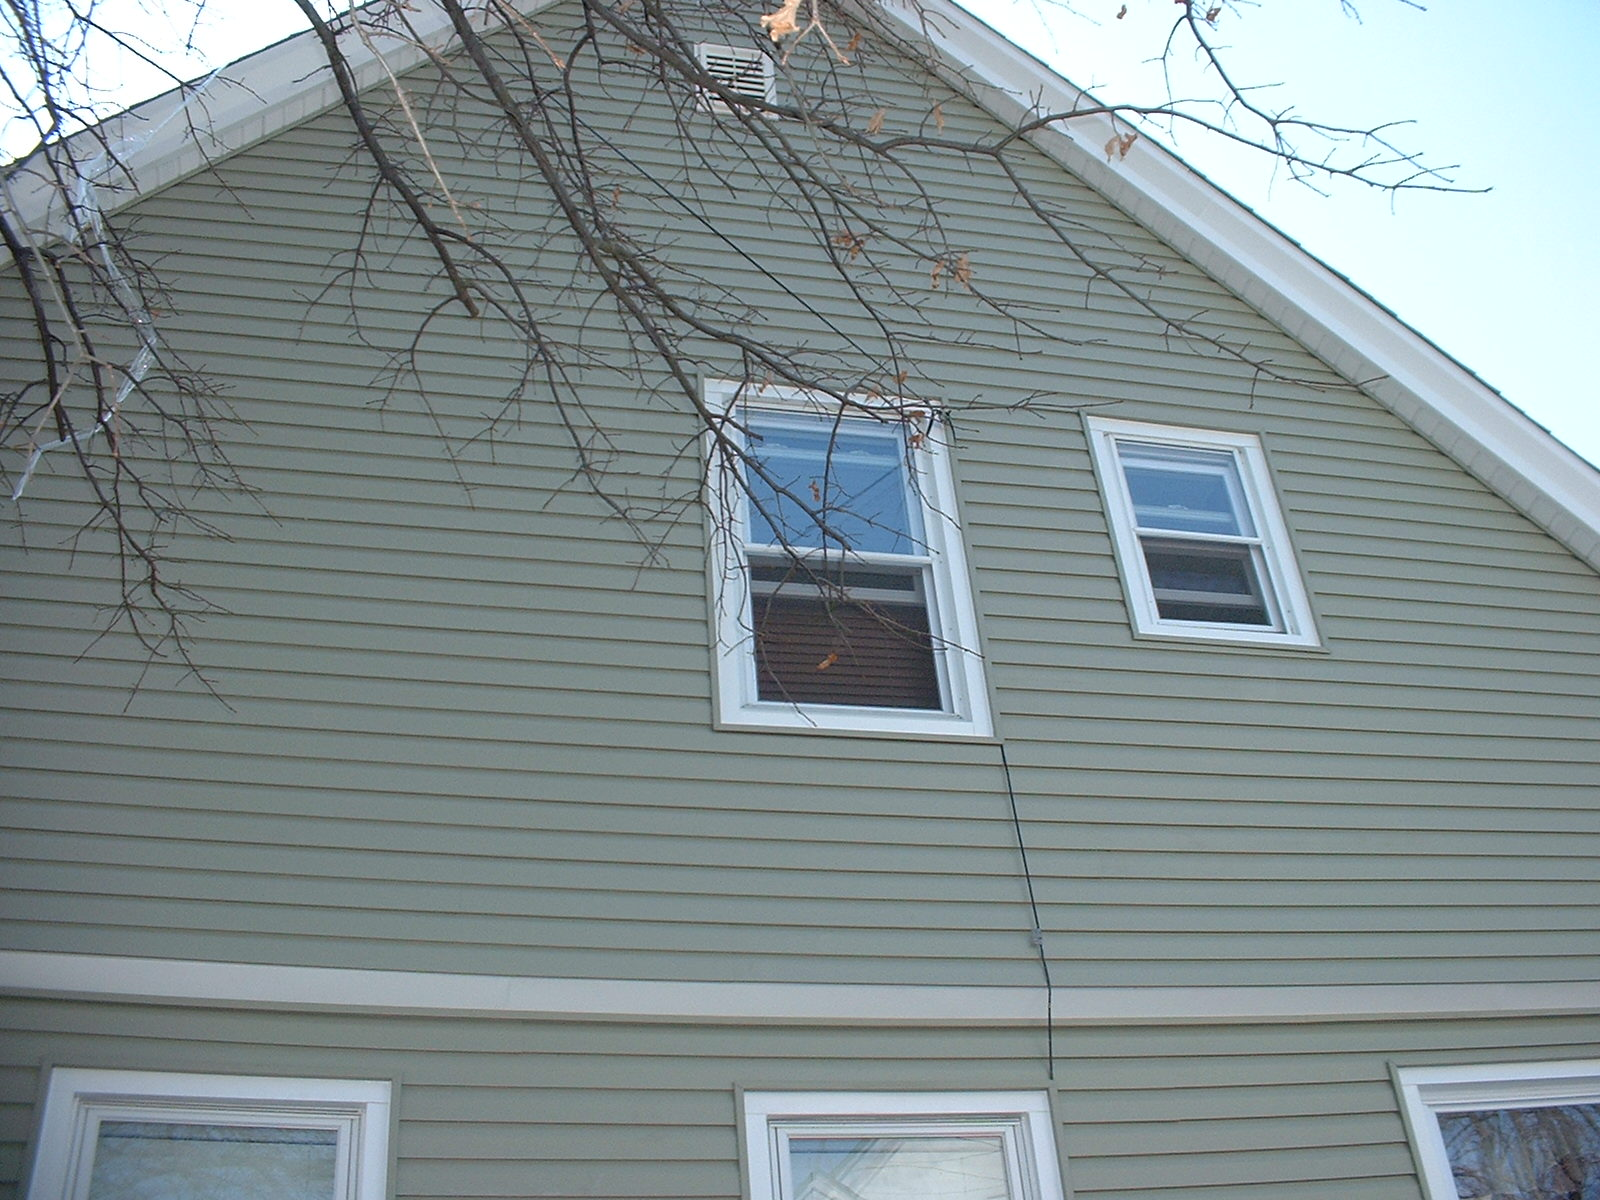 After taking down the existing siding on the gable end, we found old roofing, which had to be removed also.